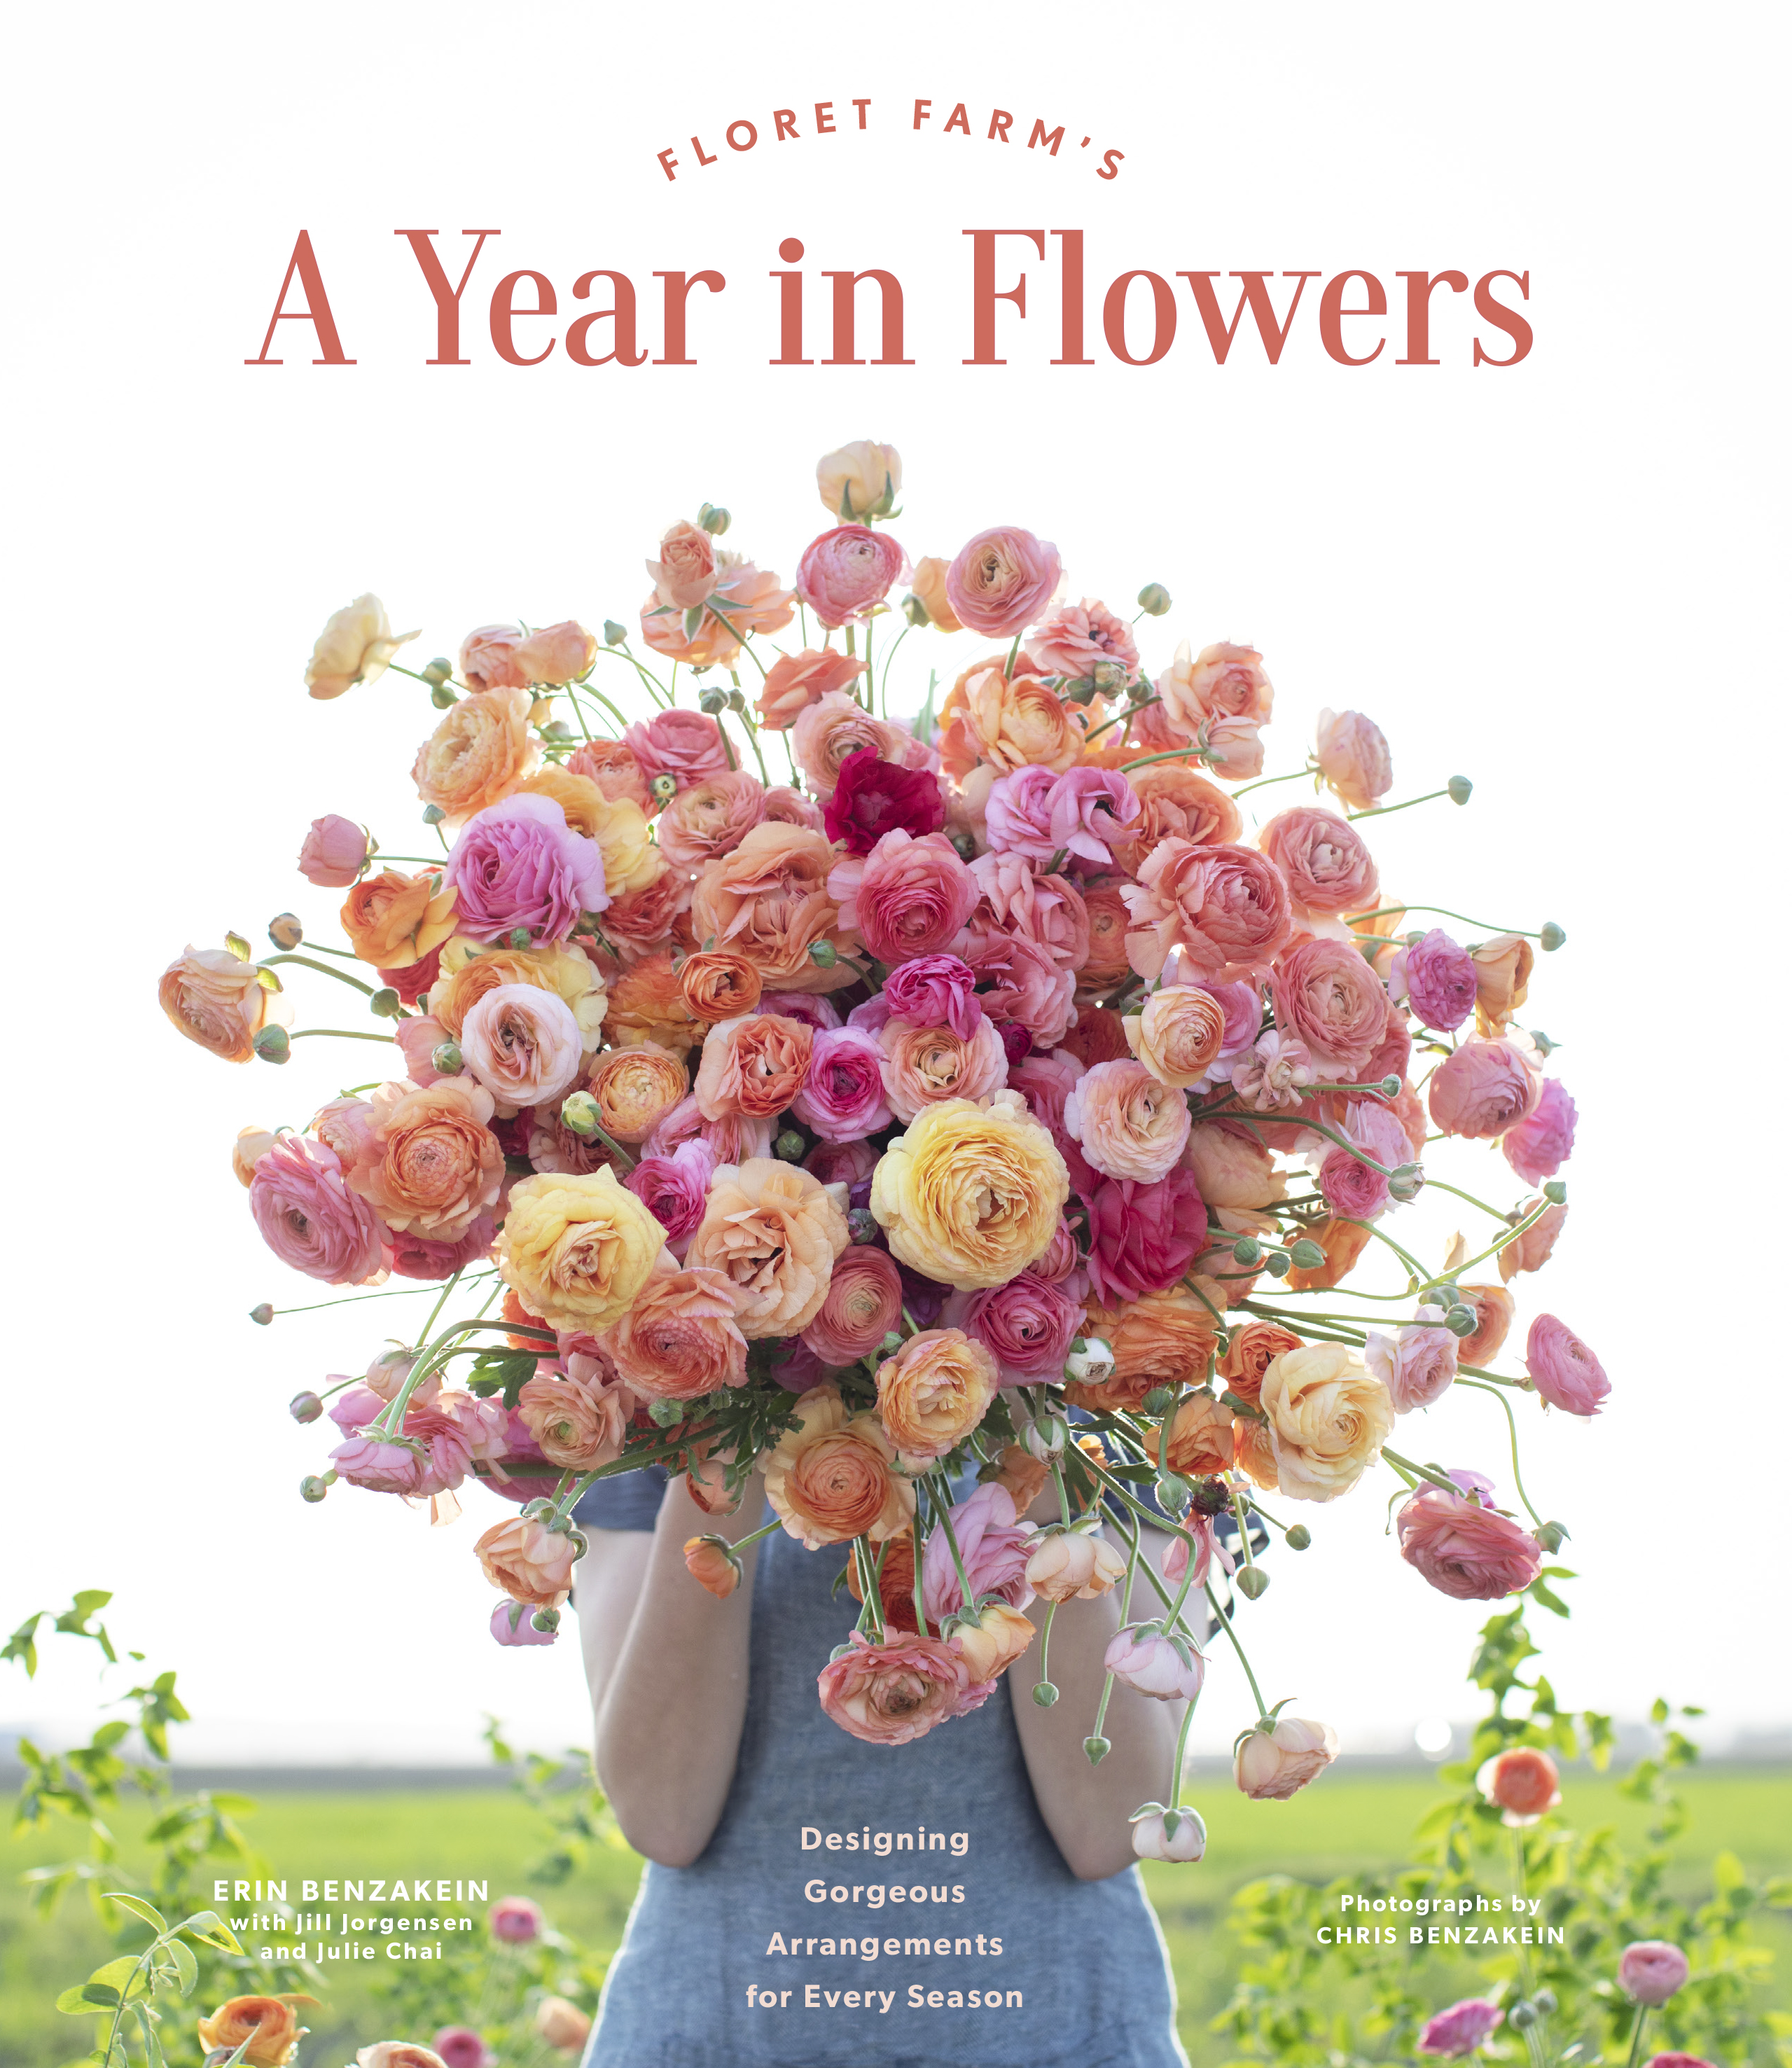 Floret Farm's A Year in Flowers Designing Gorgeous Arrangements for Every Season